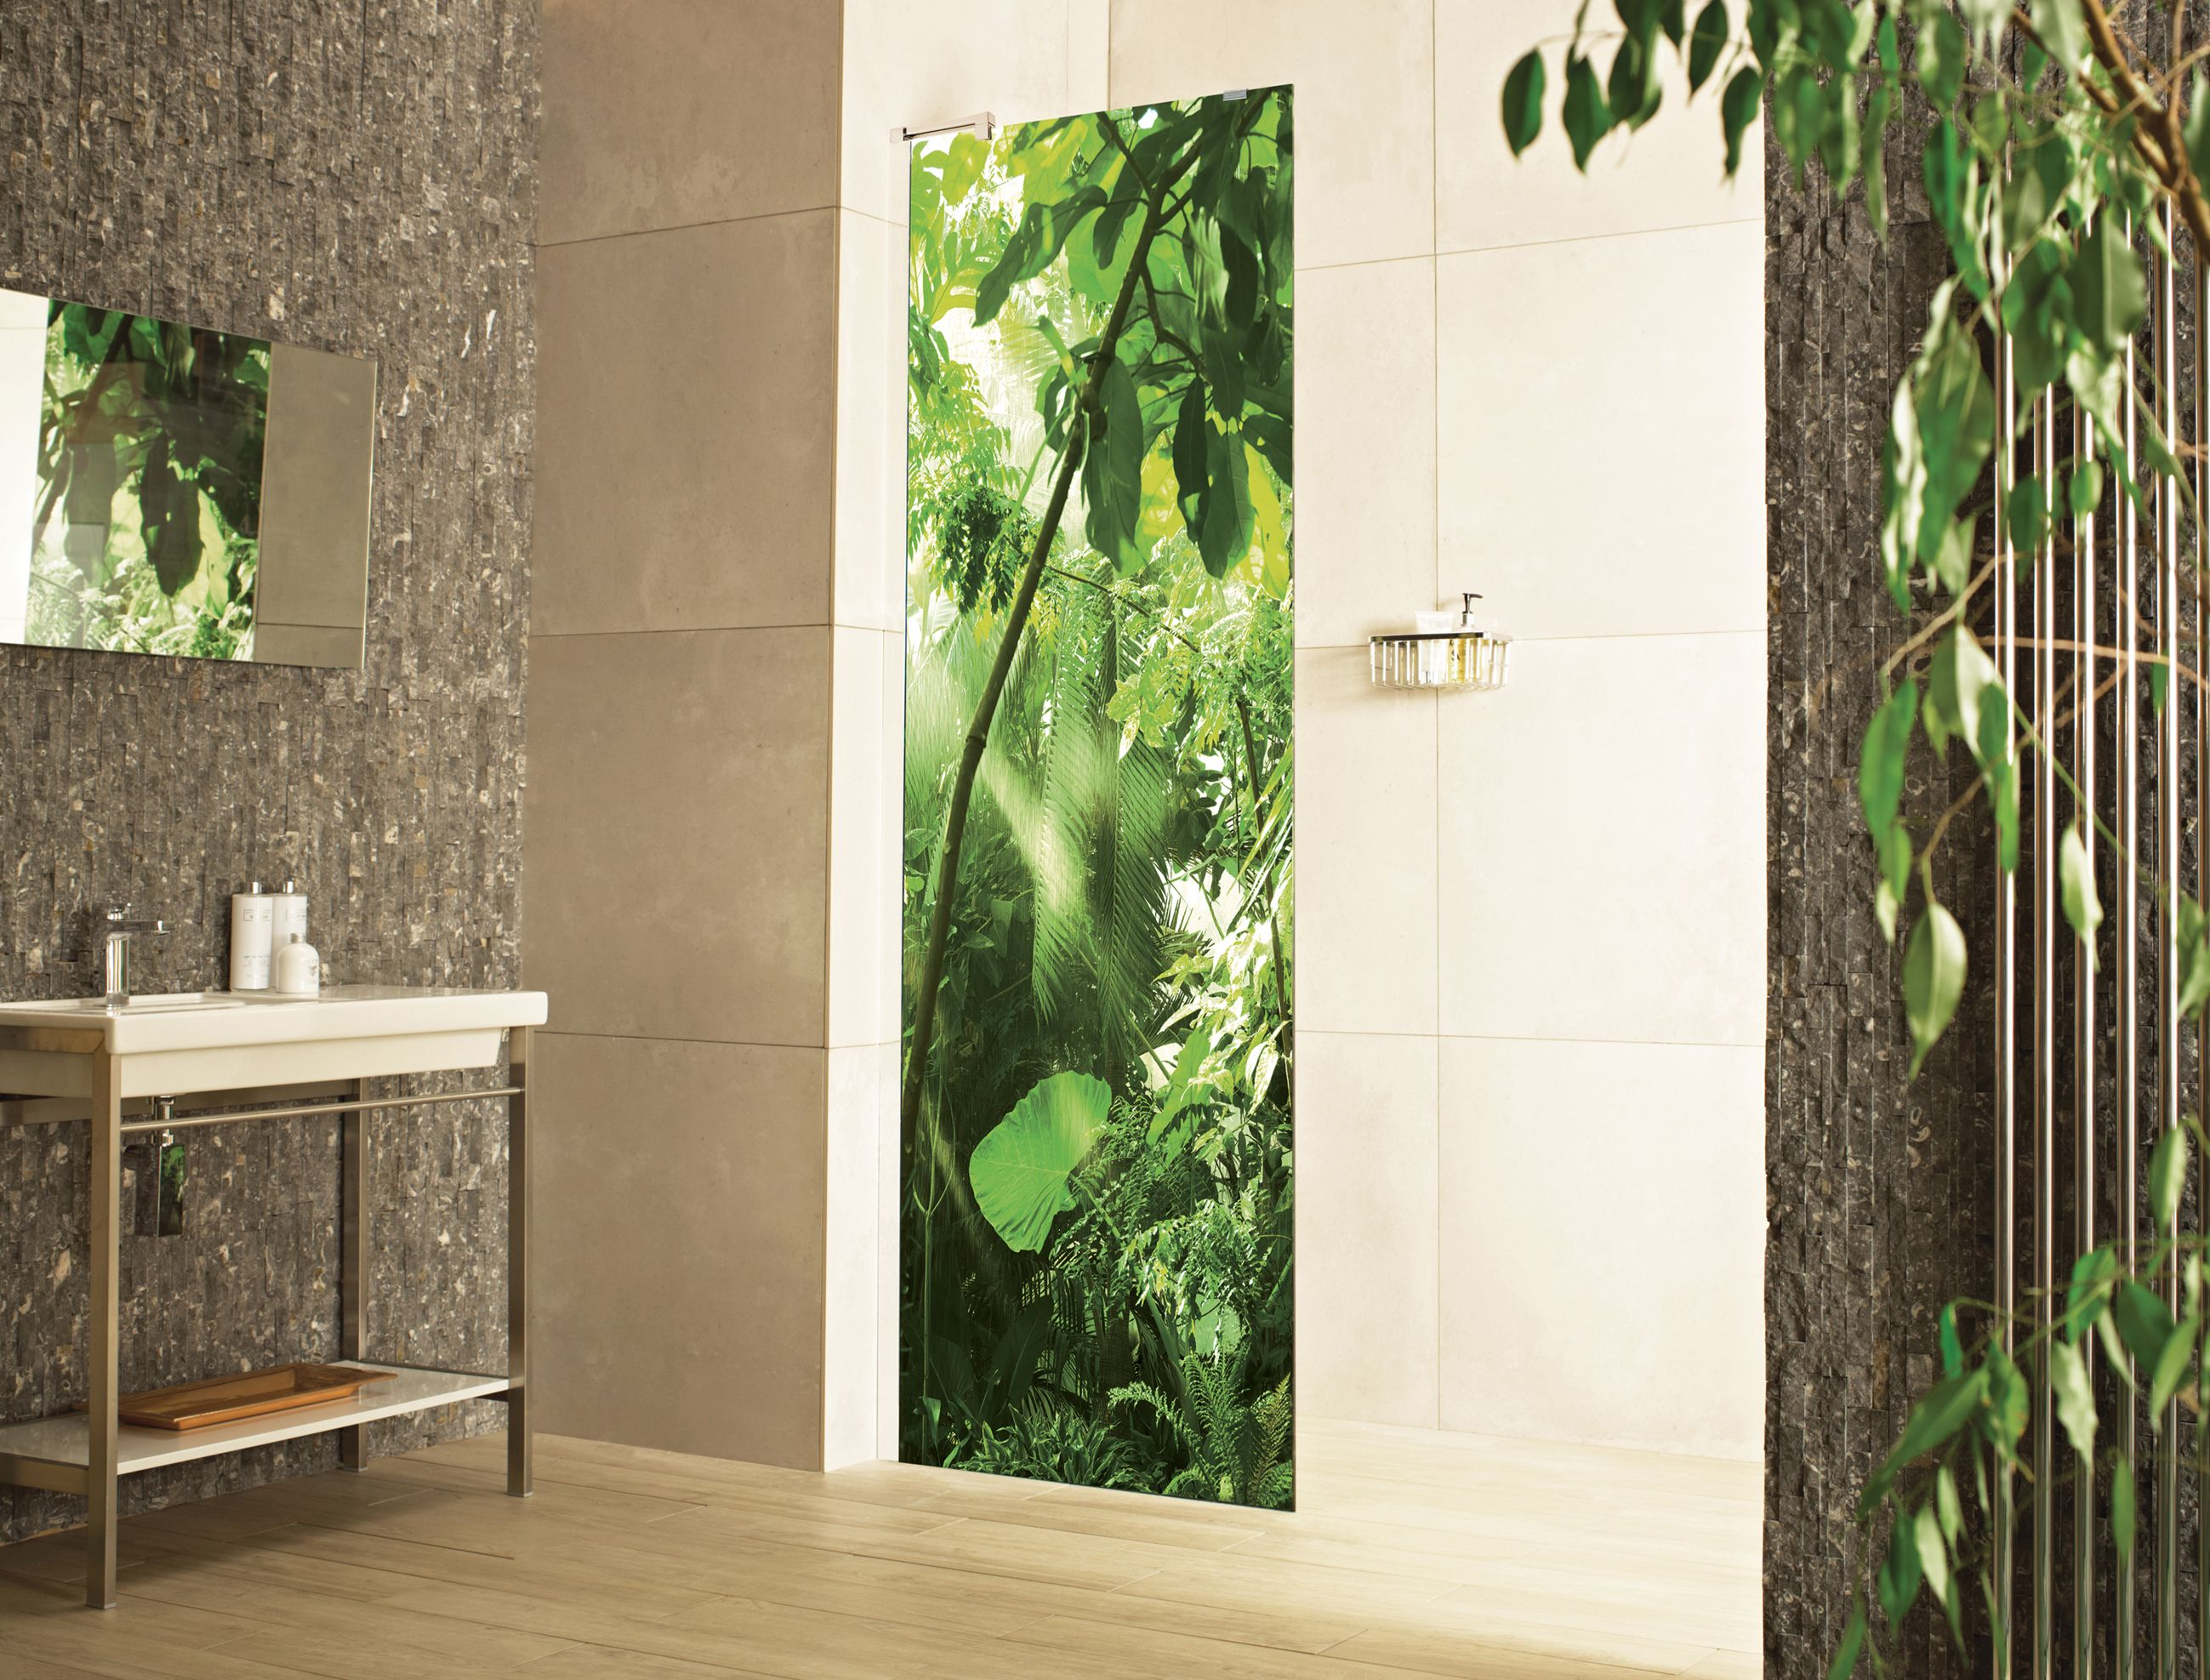 A Design From Our Decem Expressions The Rainforest Printed Glass Wetroom Panel For Projects Roman Can Print Badezimmer Einrichtung Duschabtrennung Badezimmer